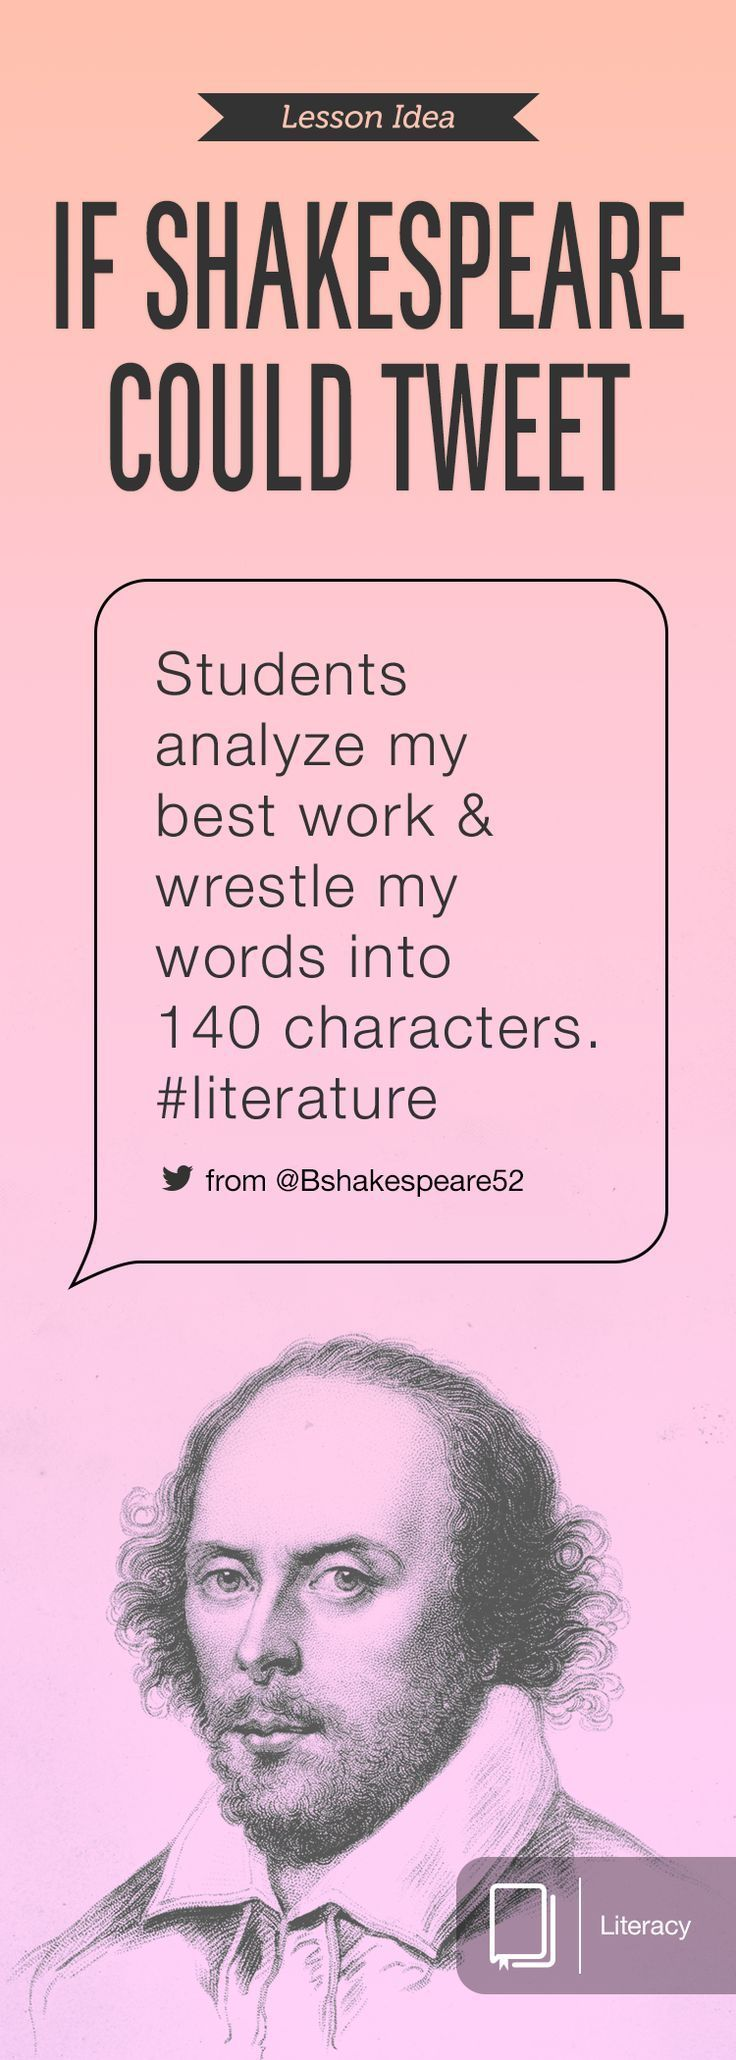 "Apple Distinguished Educator Lawrence Reiff modernizes Shakespeare in the high-school classroom with ""If Shakespeare Could Tweet."" His lesson helps students understand point of view using apps like iAnnotate and Notability to manipulate original text. Imagine students reducing Hamlet's ""To be, or not to be…"" soliloquy to a 140-character tweet! They then move on to using iMovie to create a film, complete with voiceover soundtrack —or they can create a graphic novel using ComicLife."